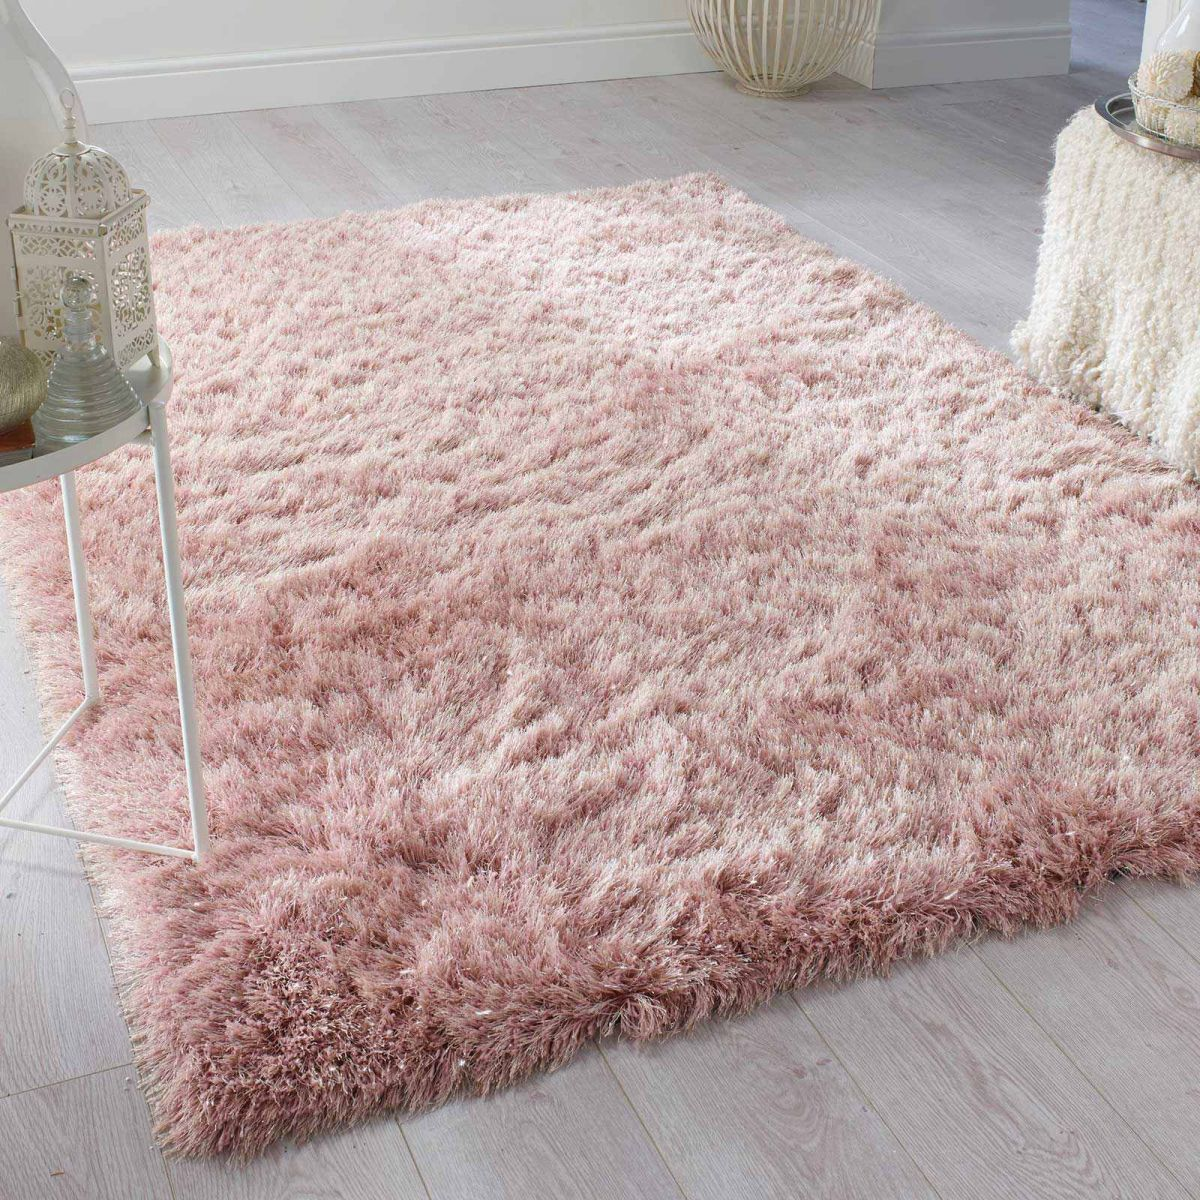 Dusky Pink Shaggy Rugs With Silver Glitter Yarn Pink Rugs Bedroom Pink Rug Blush Pink Bedroom